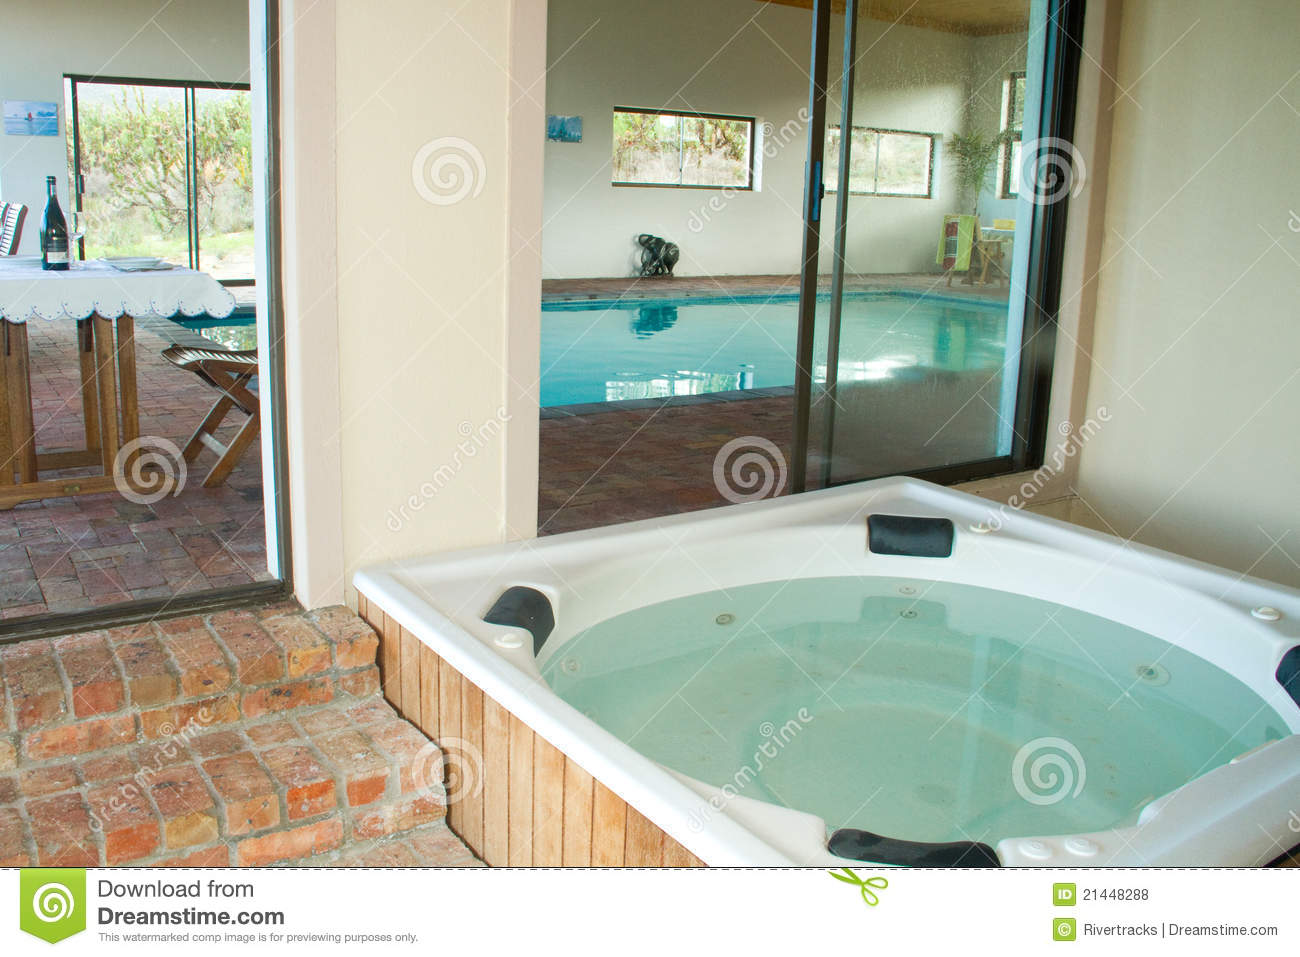 Jacuzzi indoor  Indoor Heated Swimming Pool And Jacuzzi Stock Photo - Image: 21448288